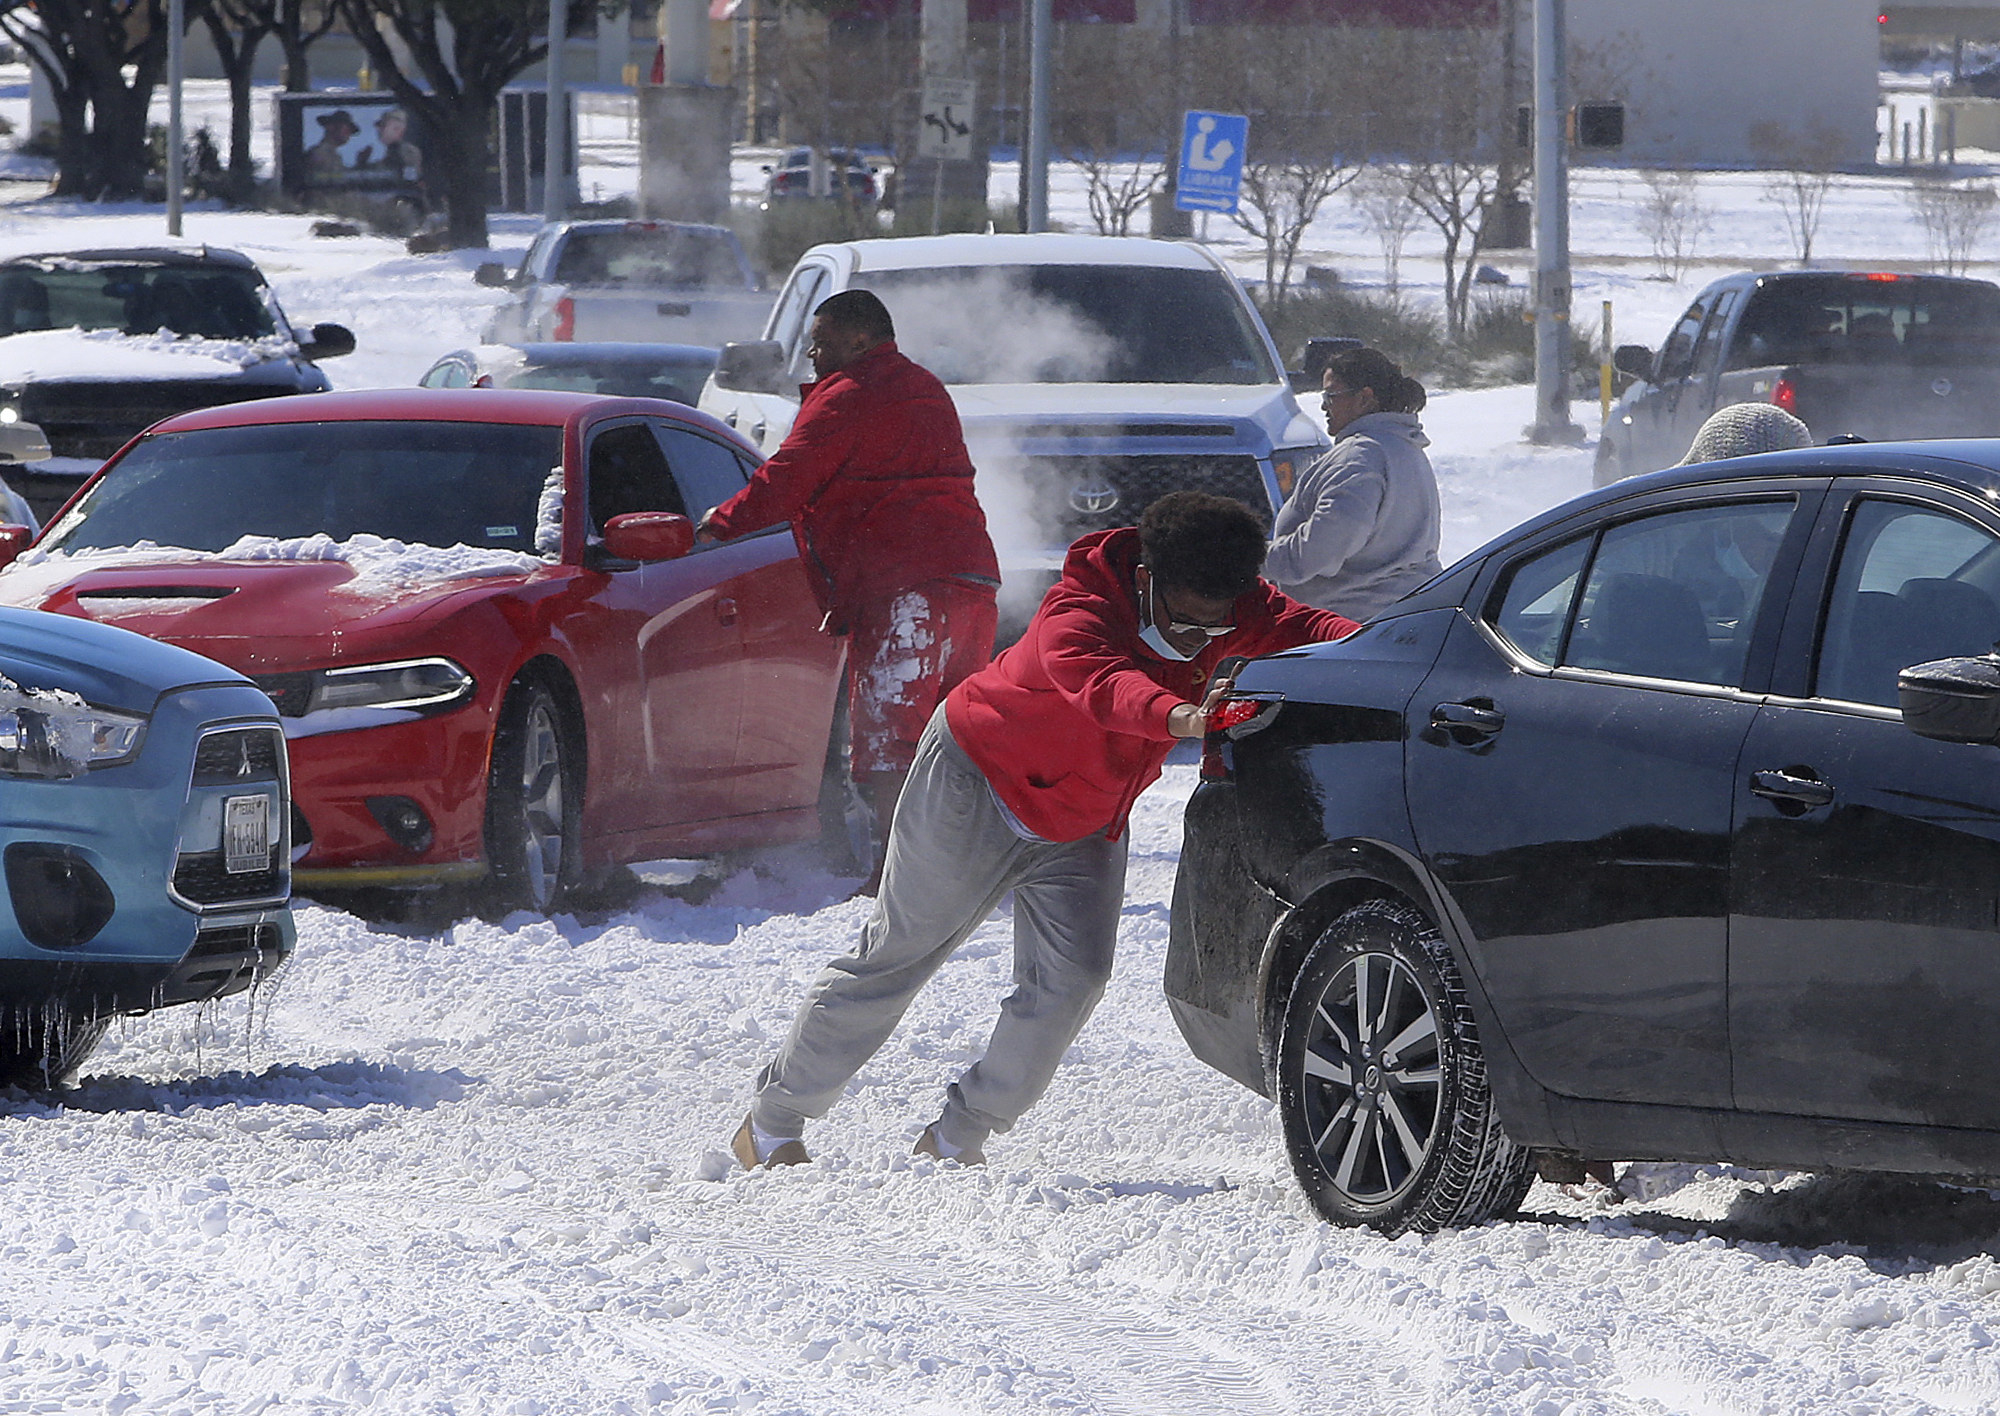 People at a crowded snowy intersection try to push their cars out of harm's way